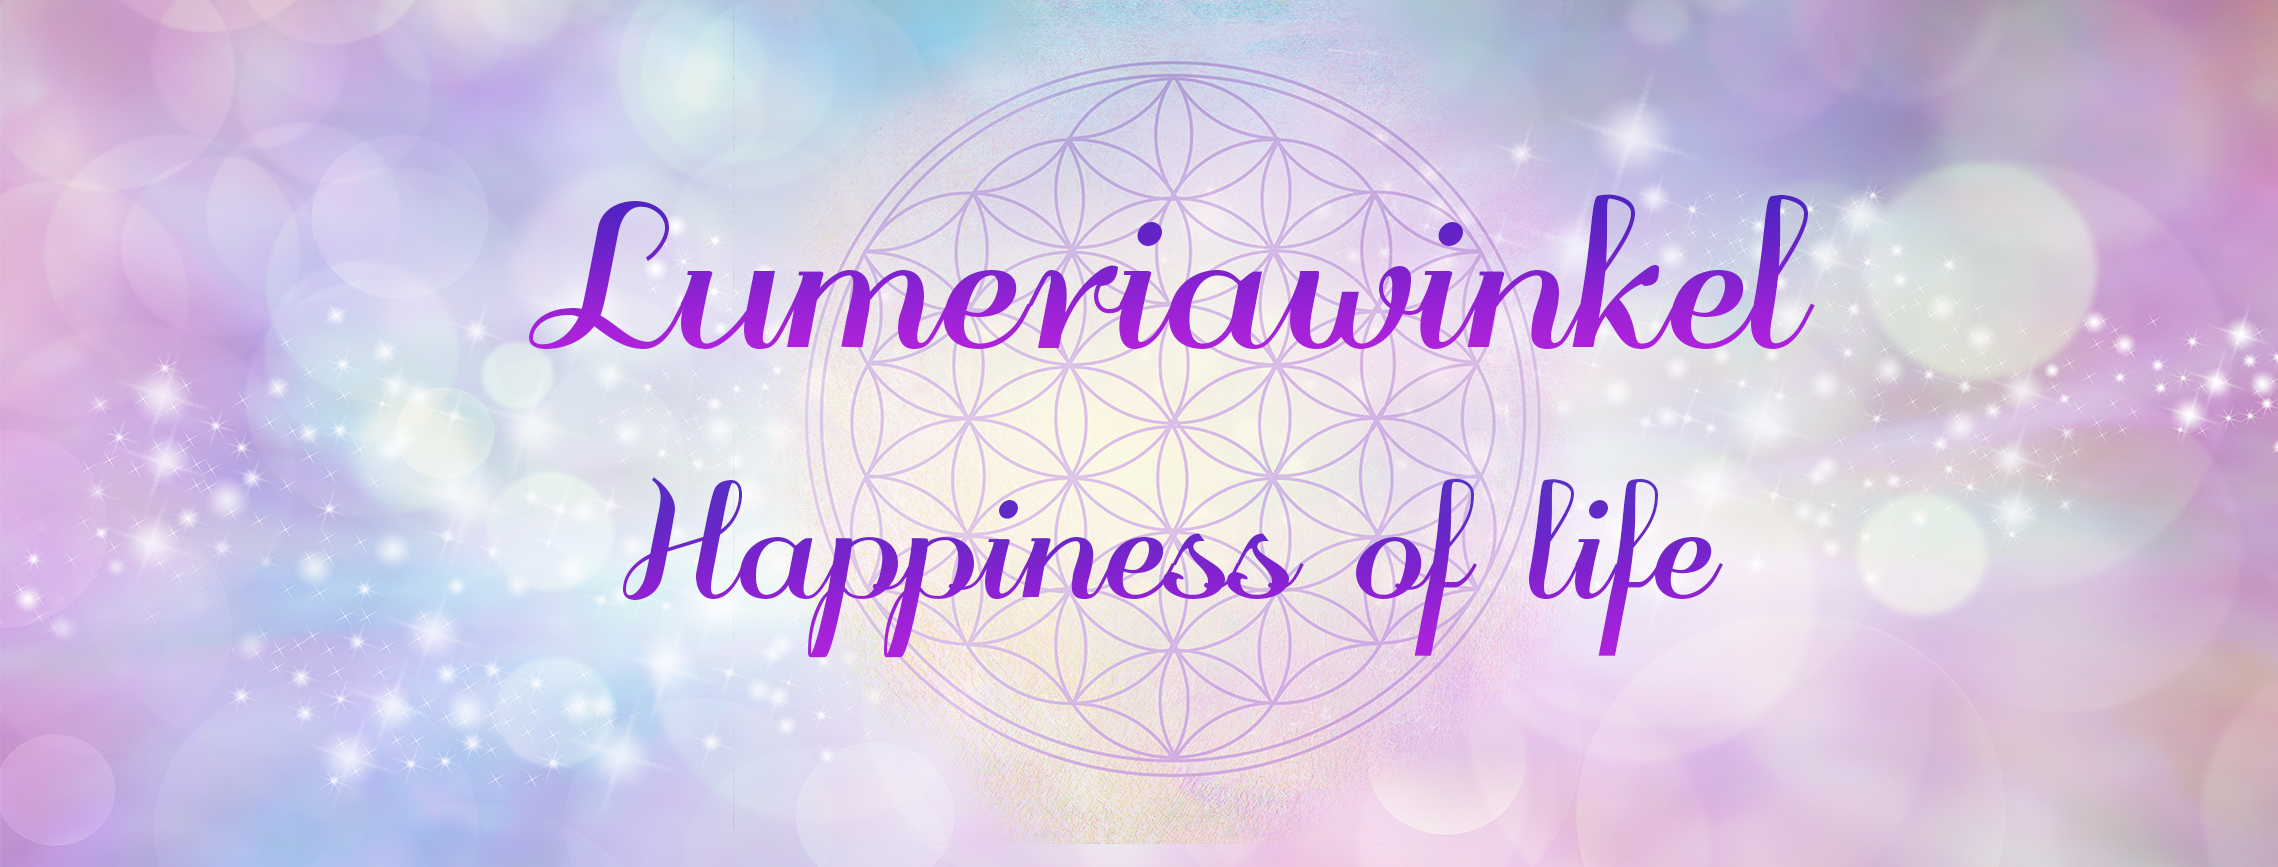 Lumeriawinkel - Happiness of life